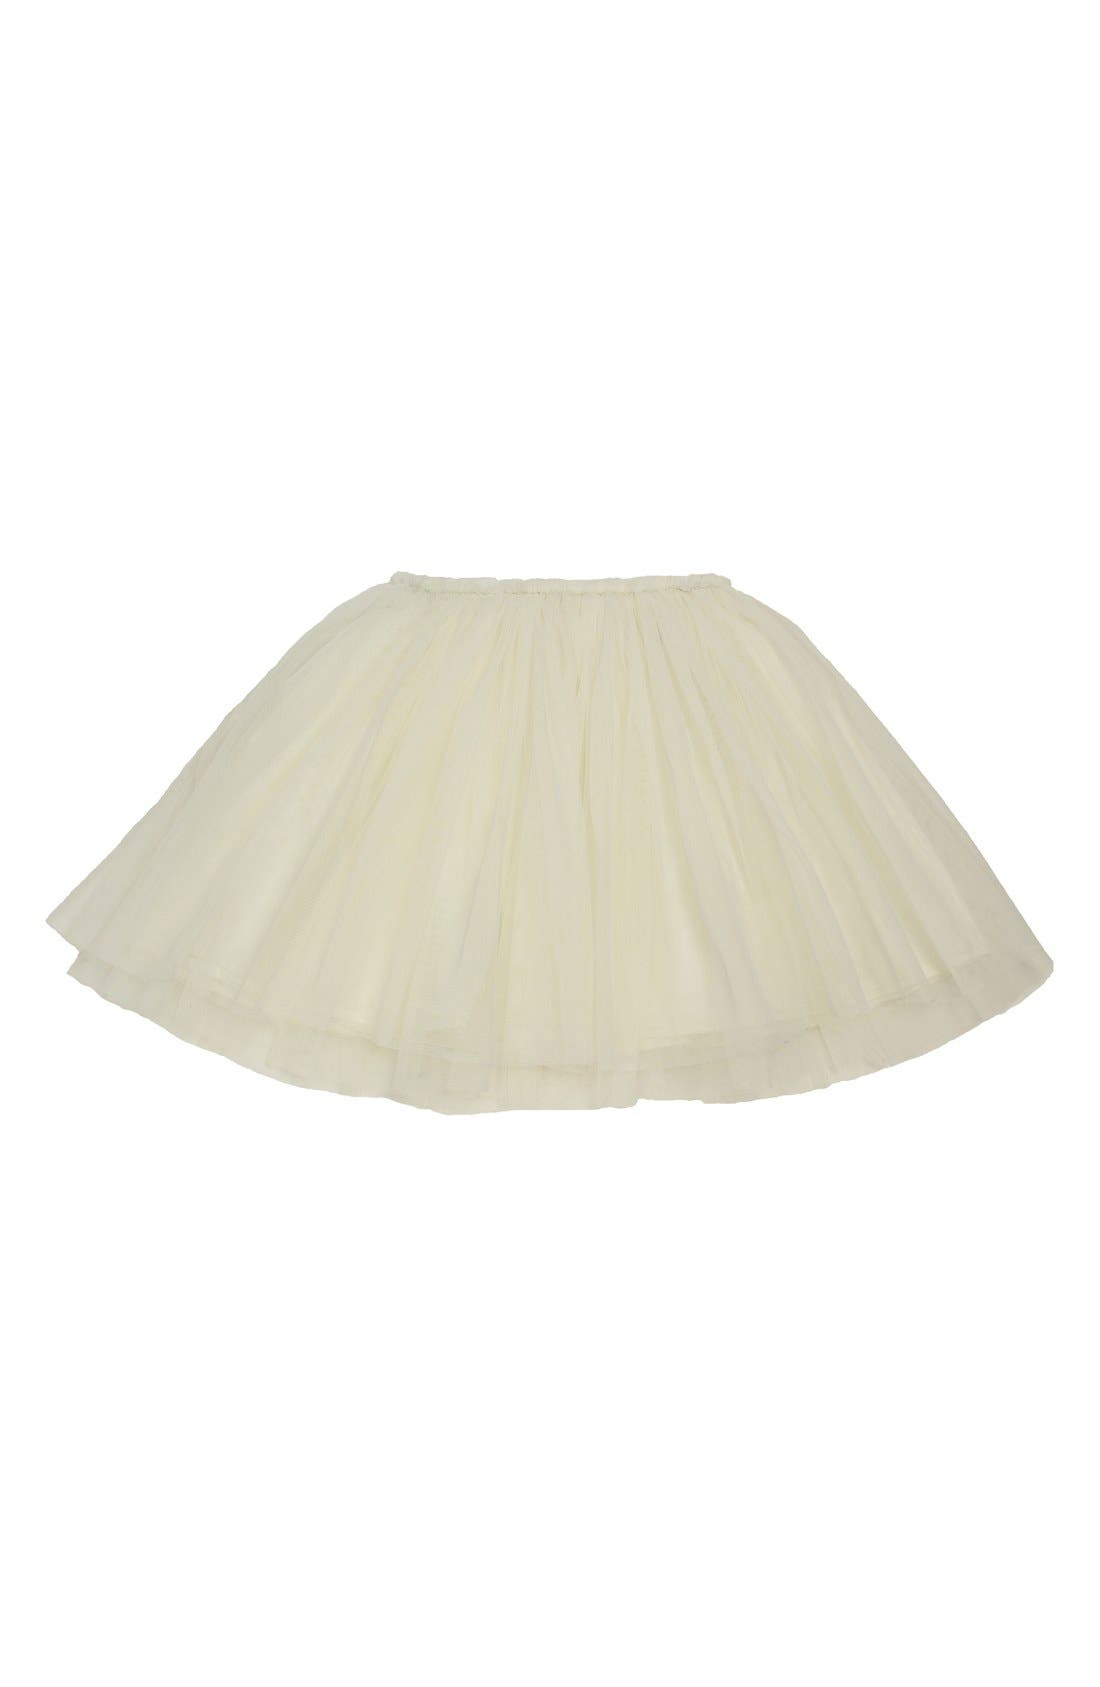 Alternate Image 2  - POCHEW Flower Embellished Tutu (Toddler Girls & Little Girls)